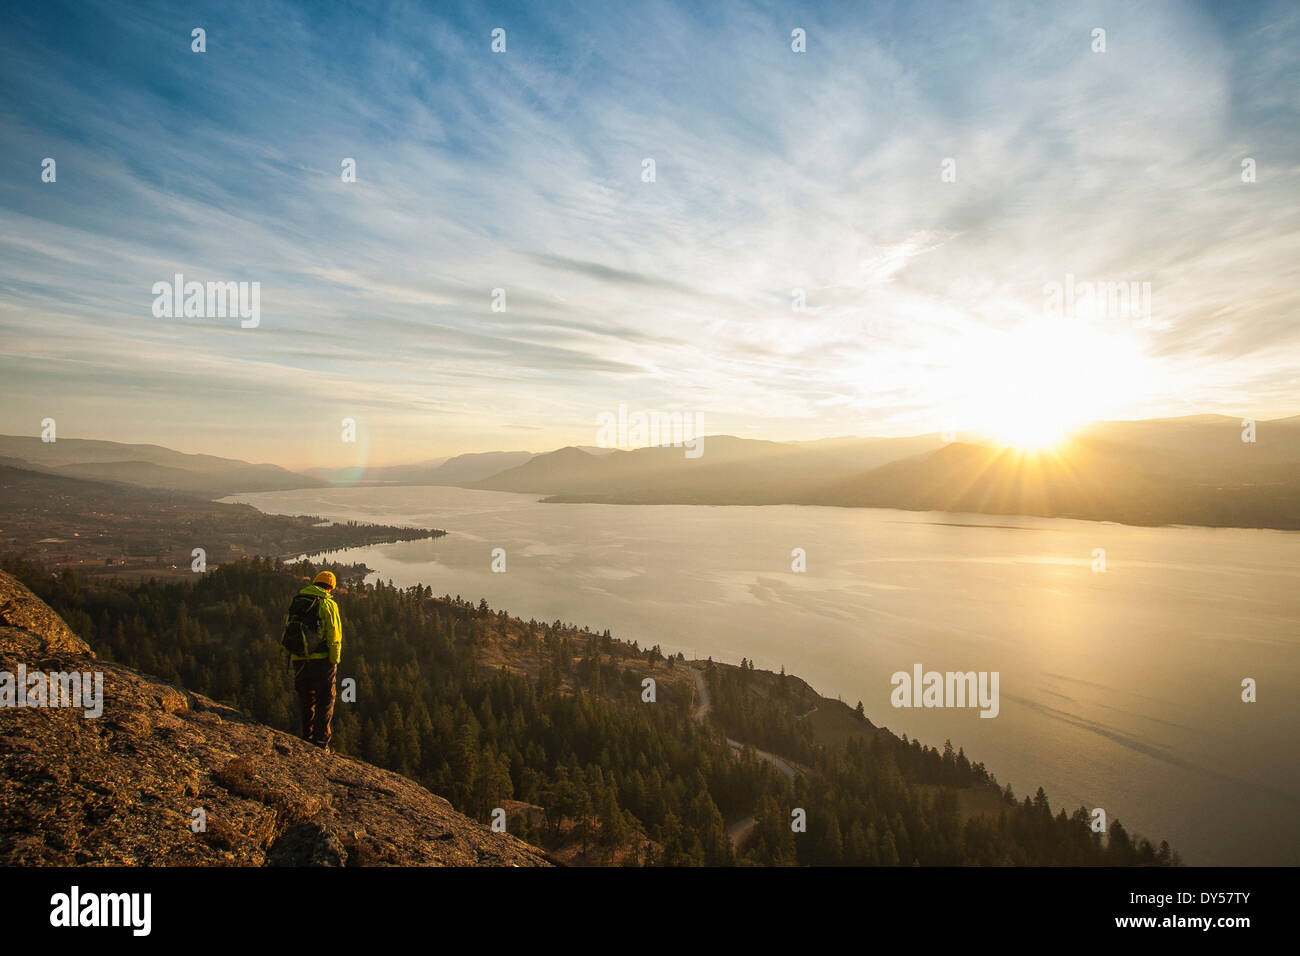 Male hiker regardant le coucher du soleil sur le lac Okanagan, Naramata, British Columbia, Canada Photo Stock